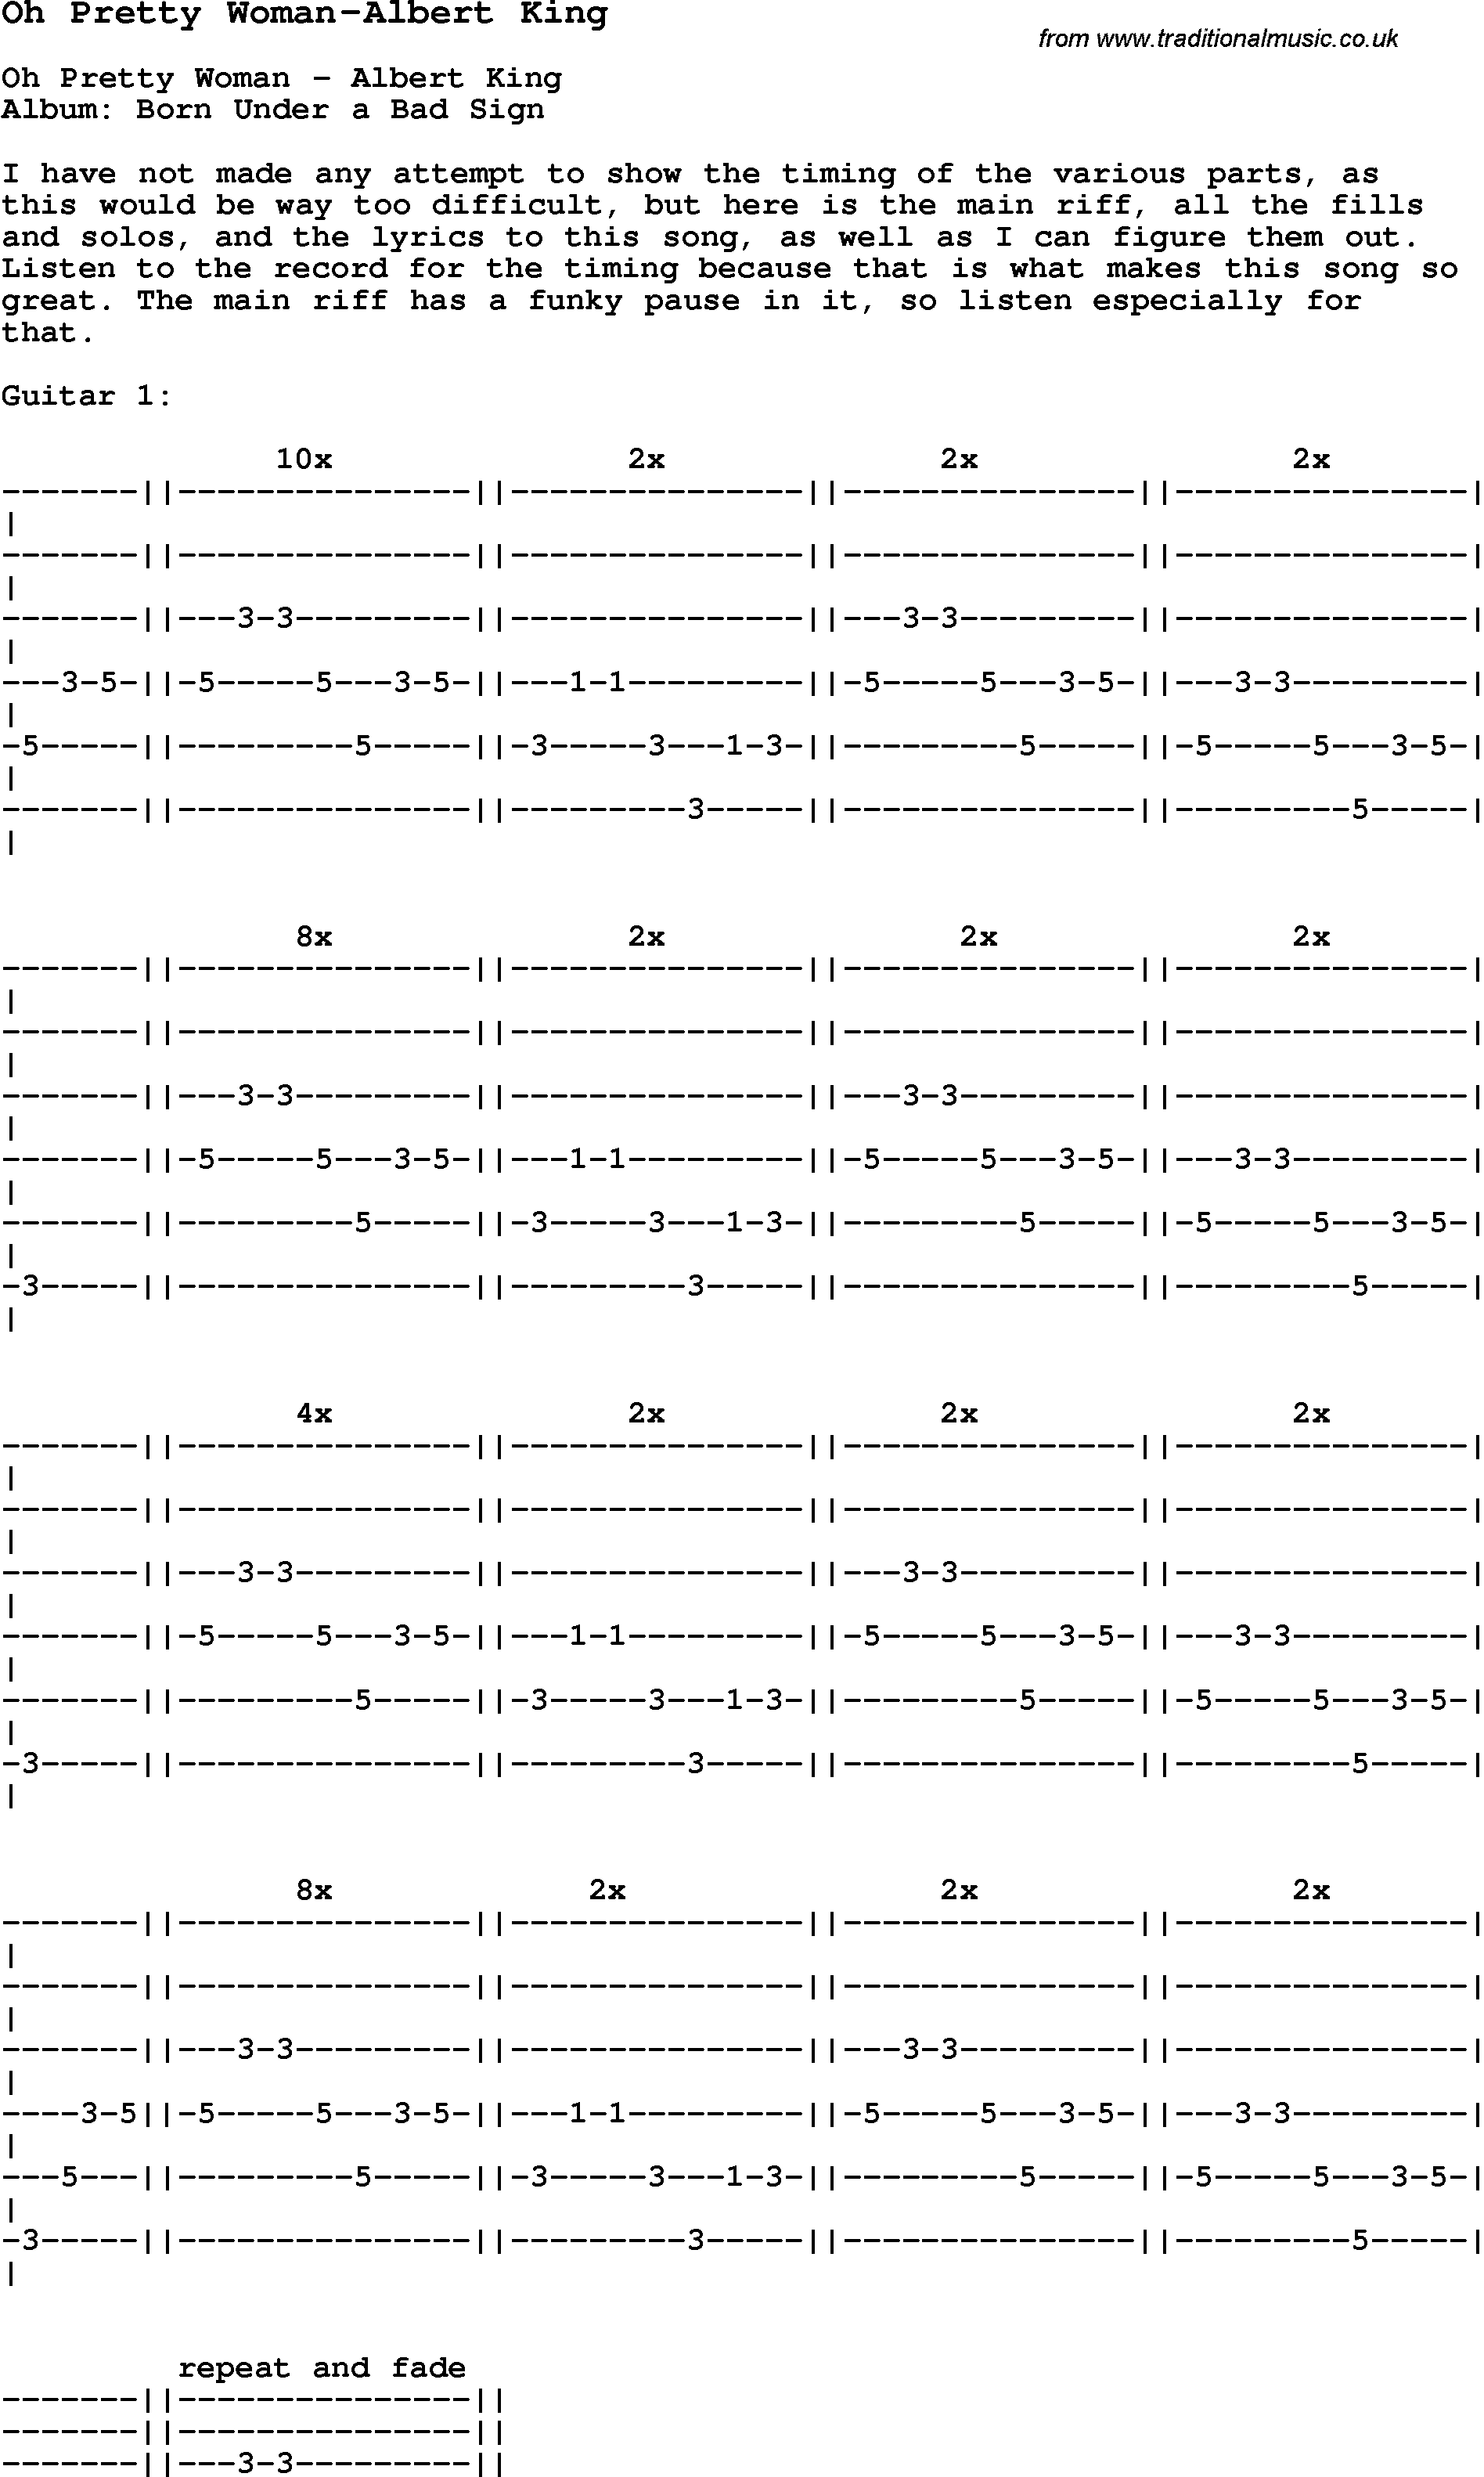 Blues Guitar Song Lyrics Chords Tablature Playing Hints For Oh